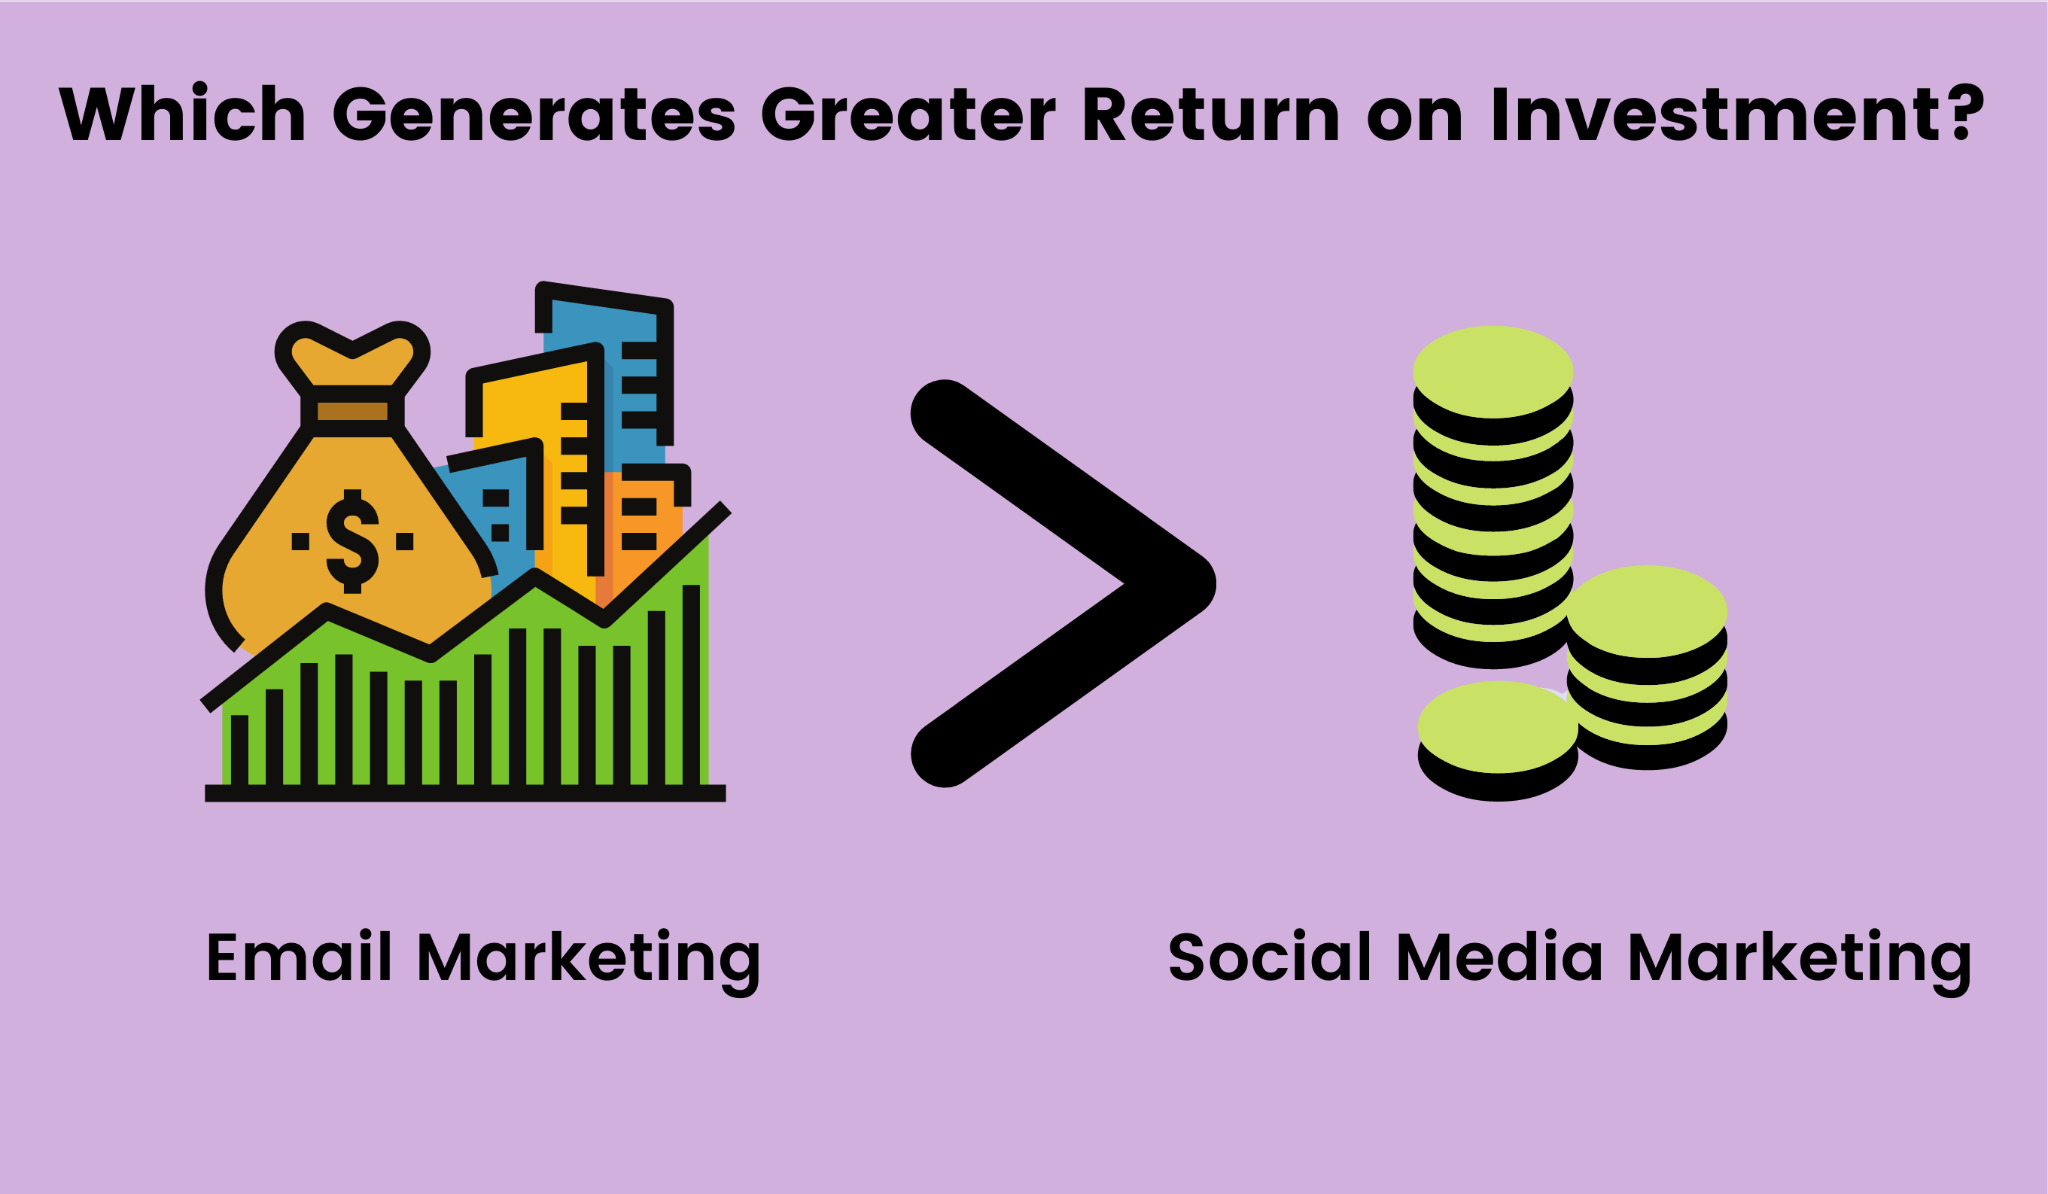 Does email marketing generate more ROI or social media?